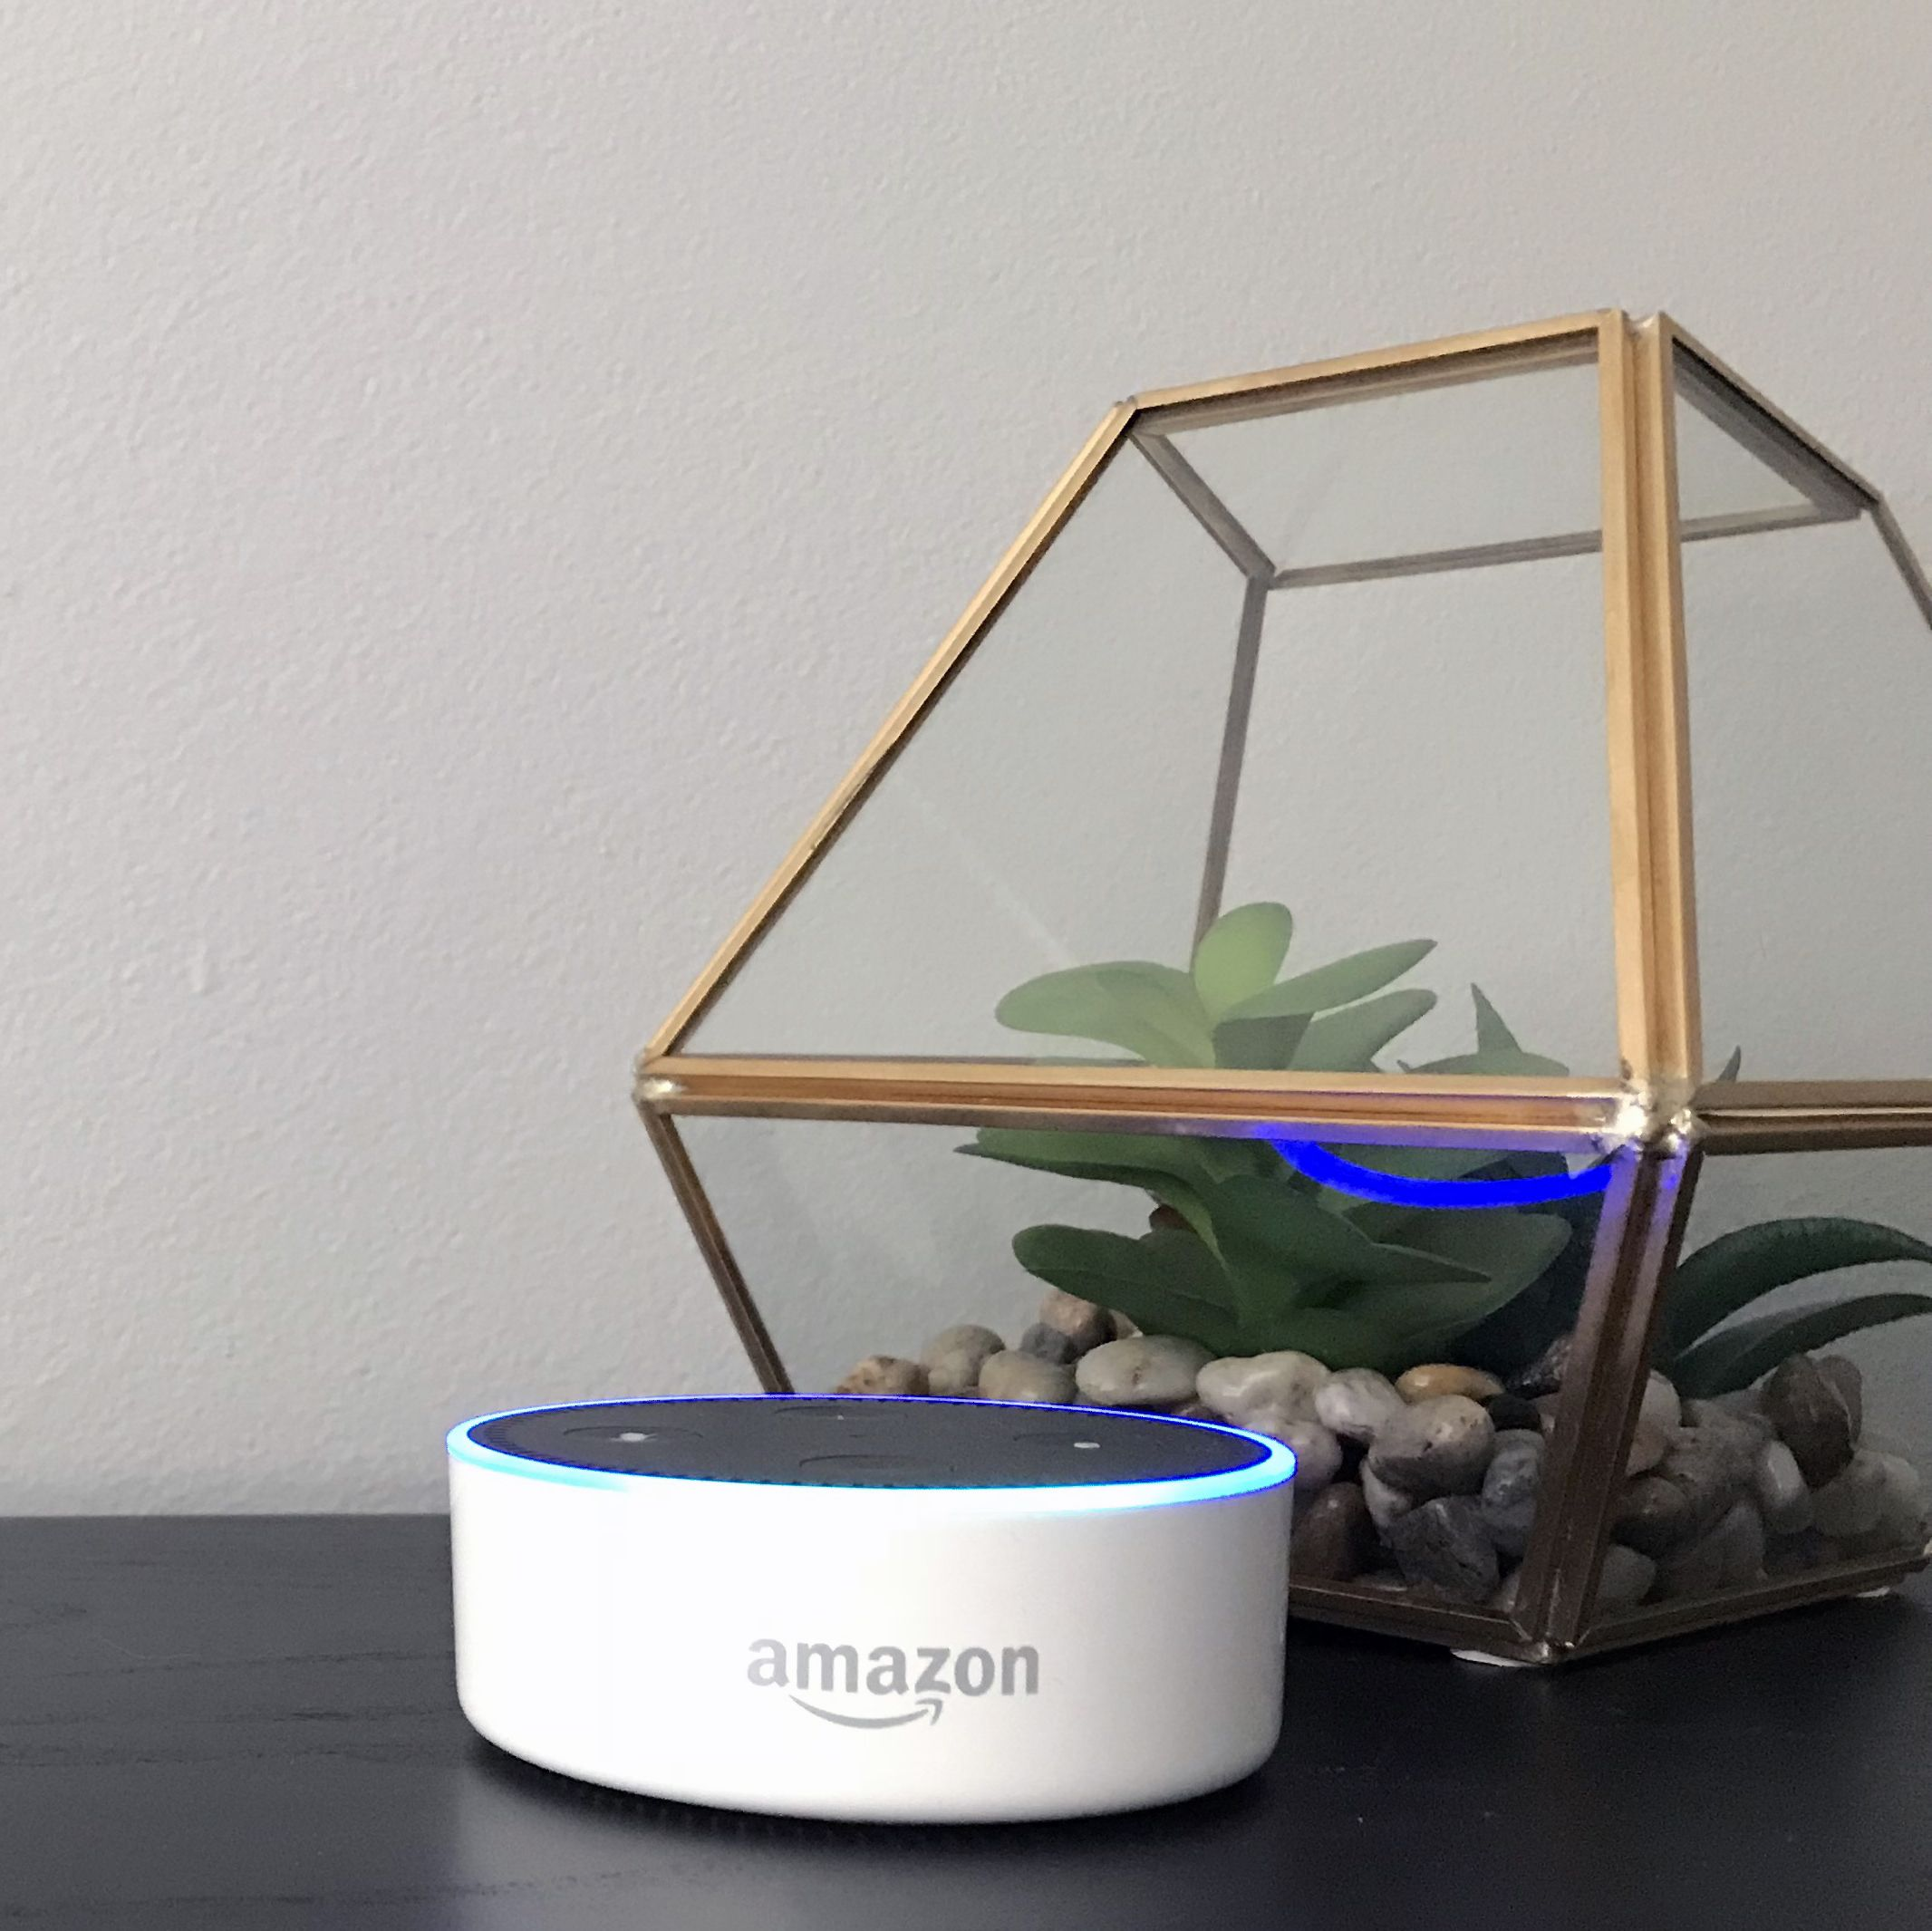 SAT Test Prep on Amazon Alexa